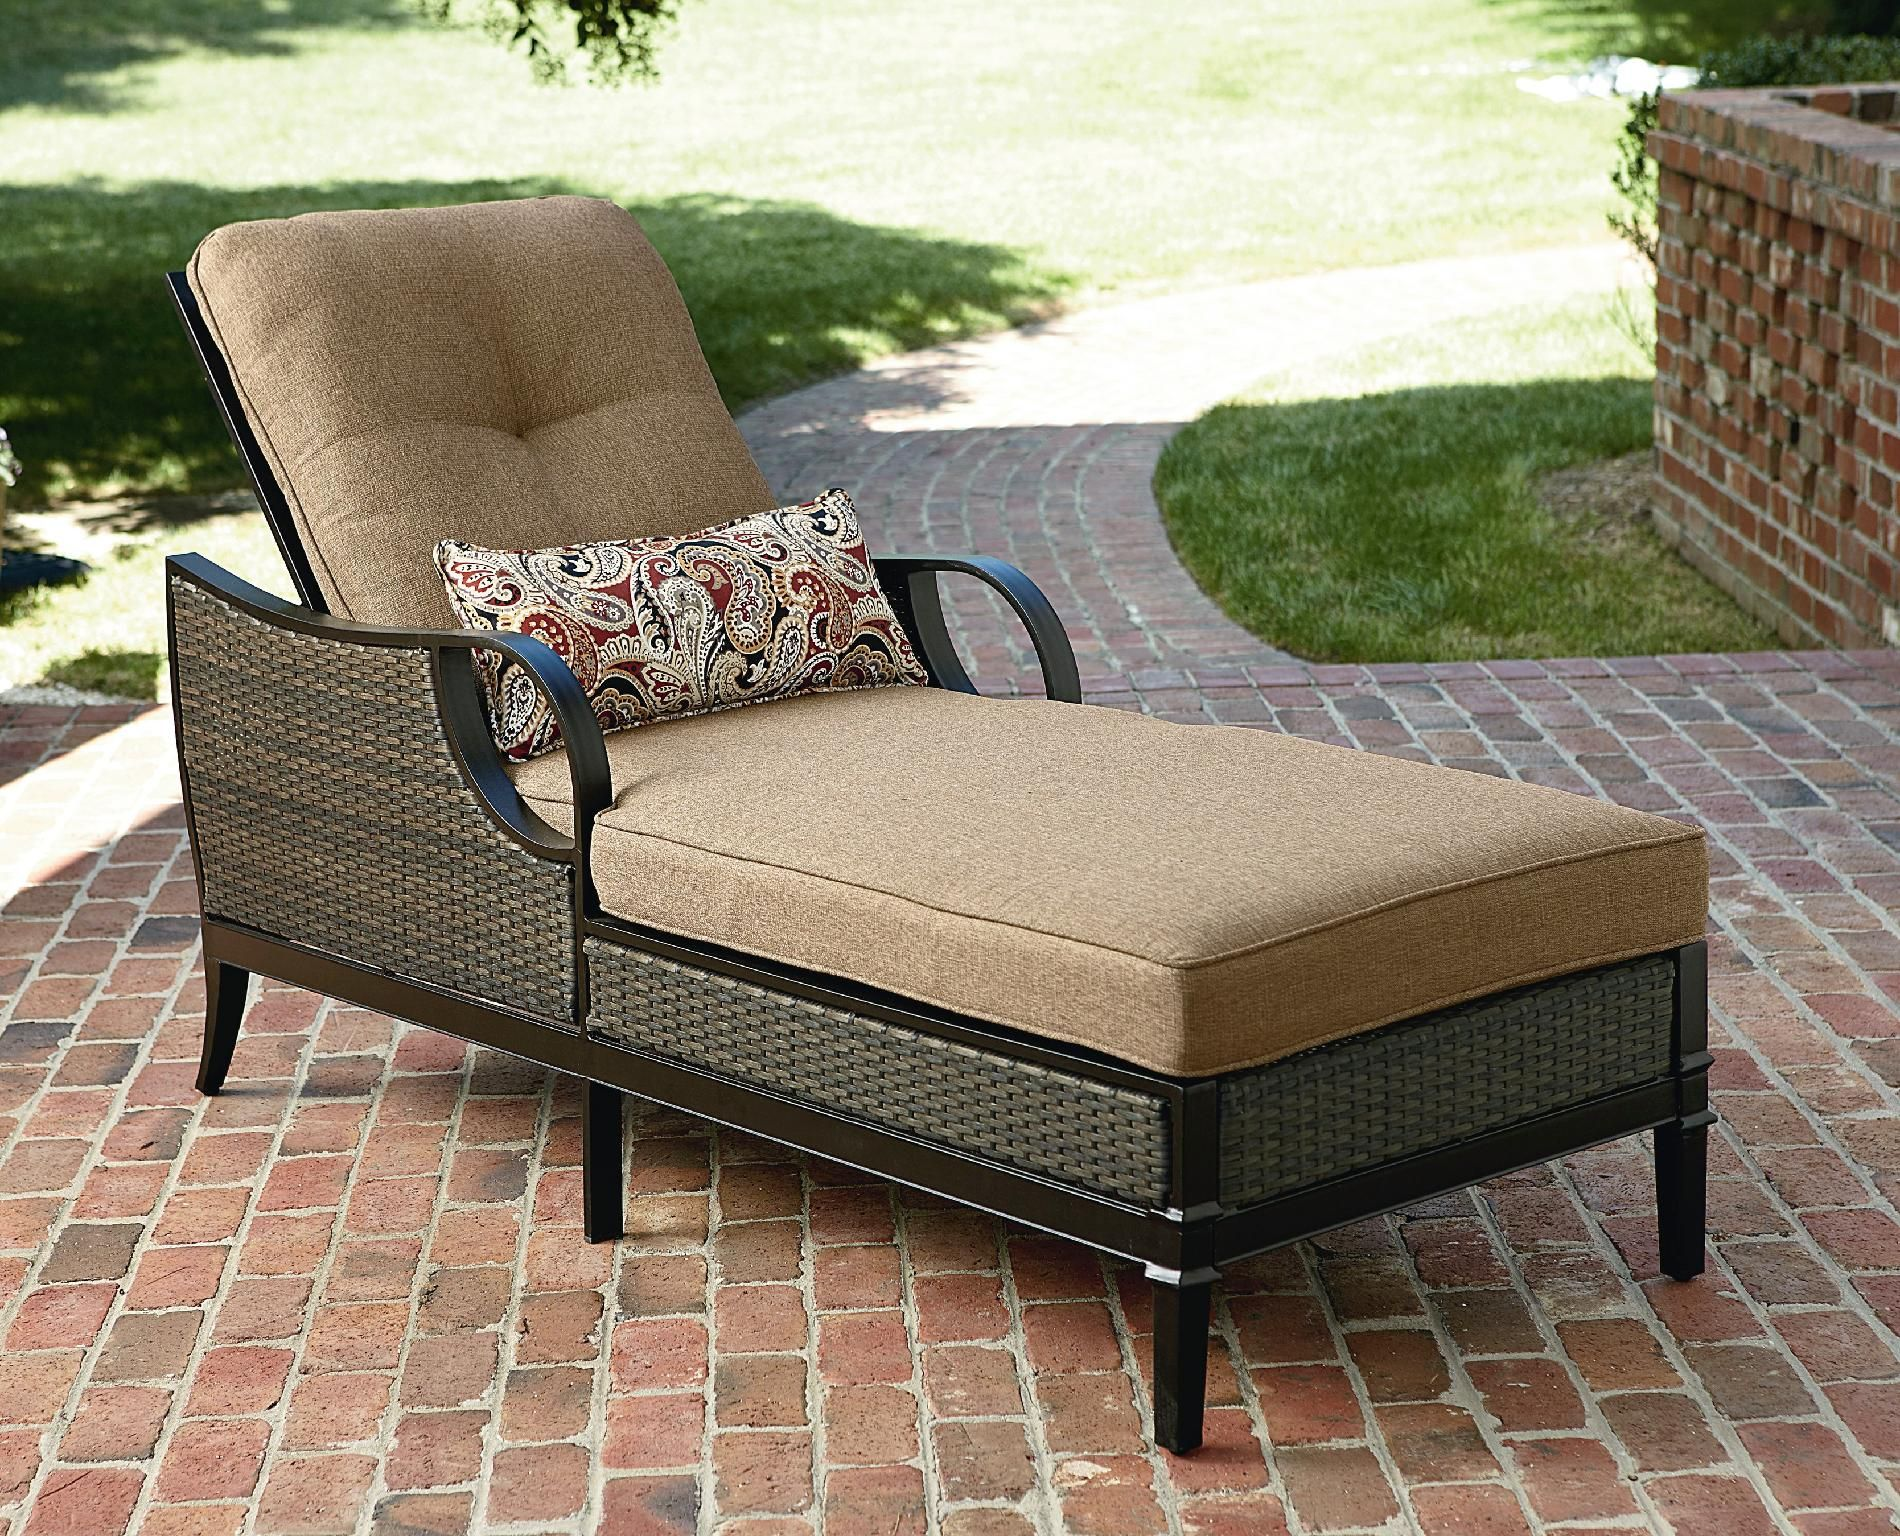 How To Choose A Comfy And Stylish Patio Chaise Lounge Goodworksfurniture In 2020 Patio Lounge Chairs Outdoor Chaise Lounge Chair Clearance Patio Furniture